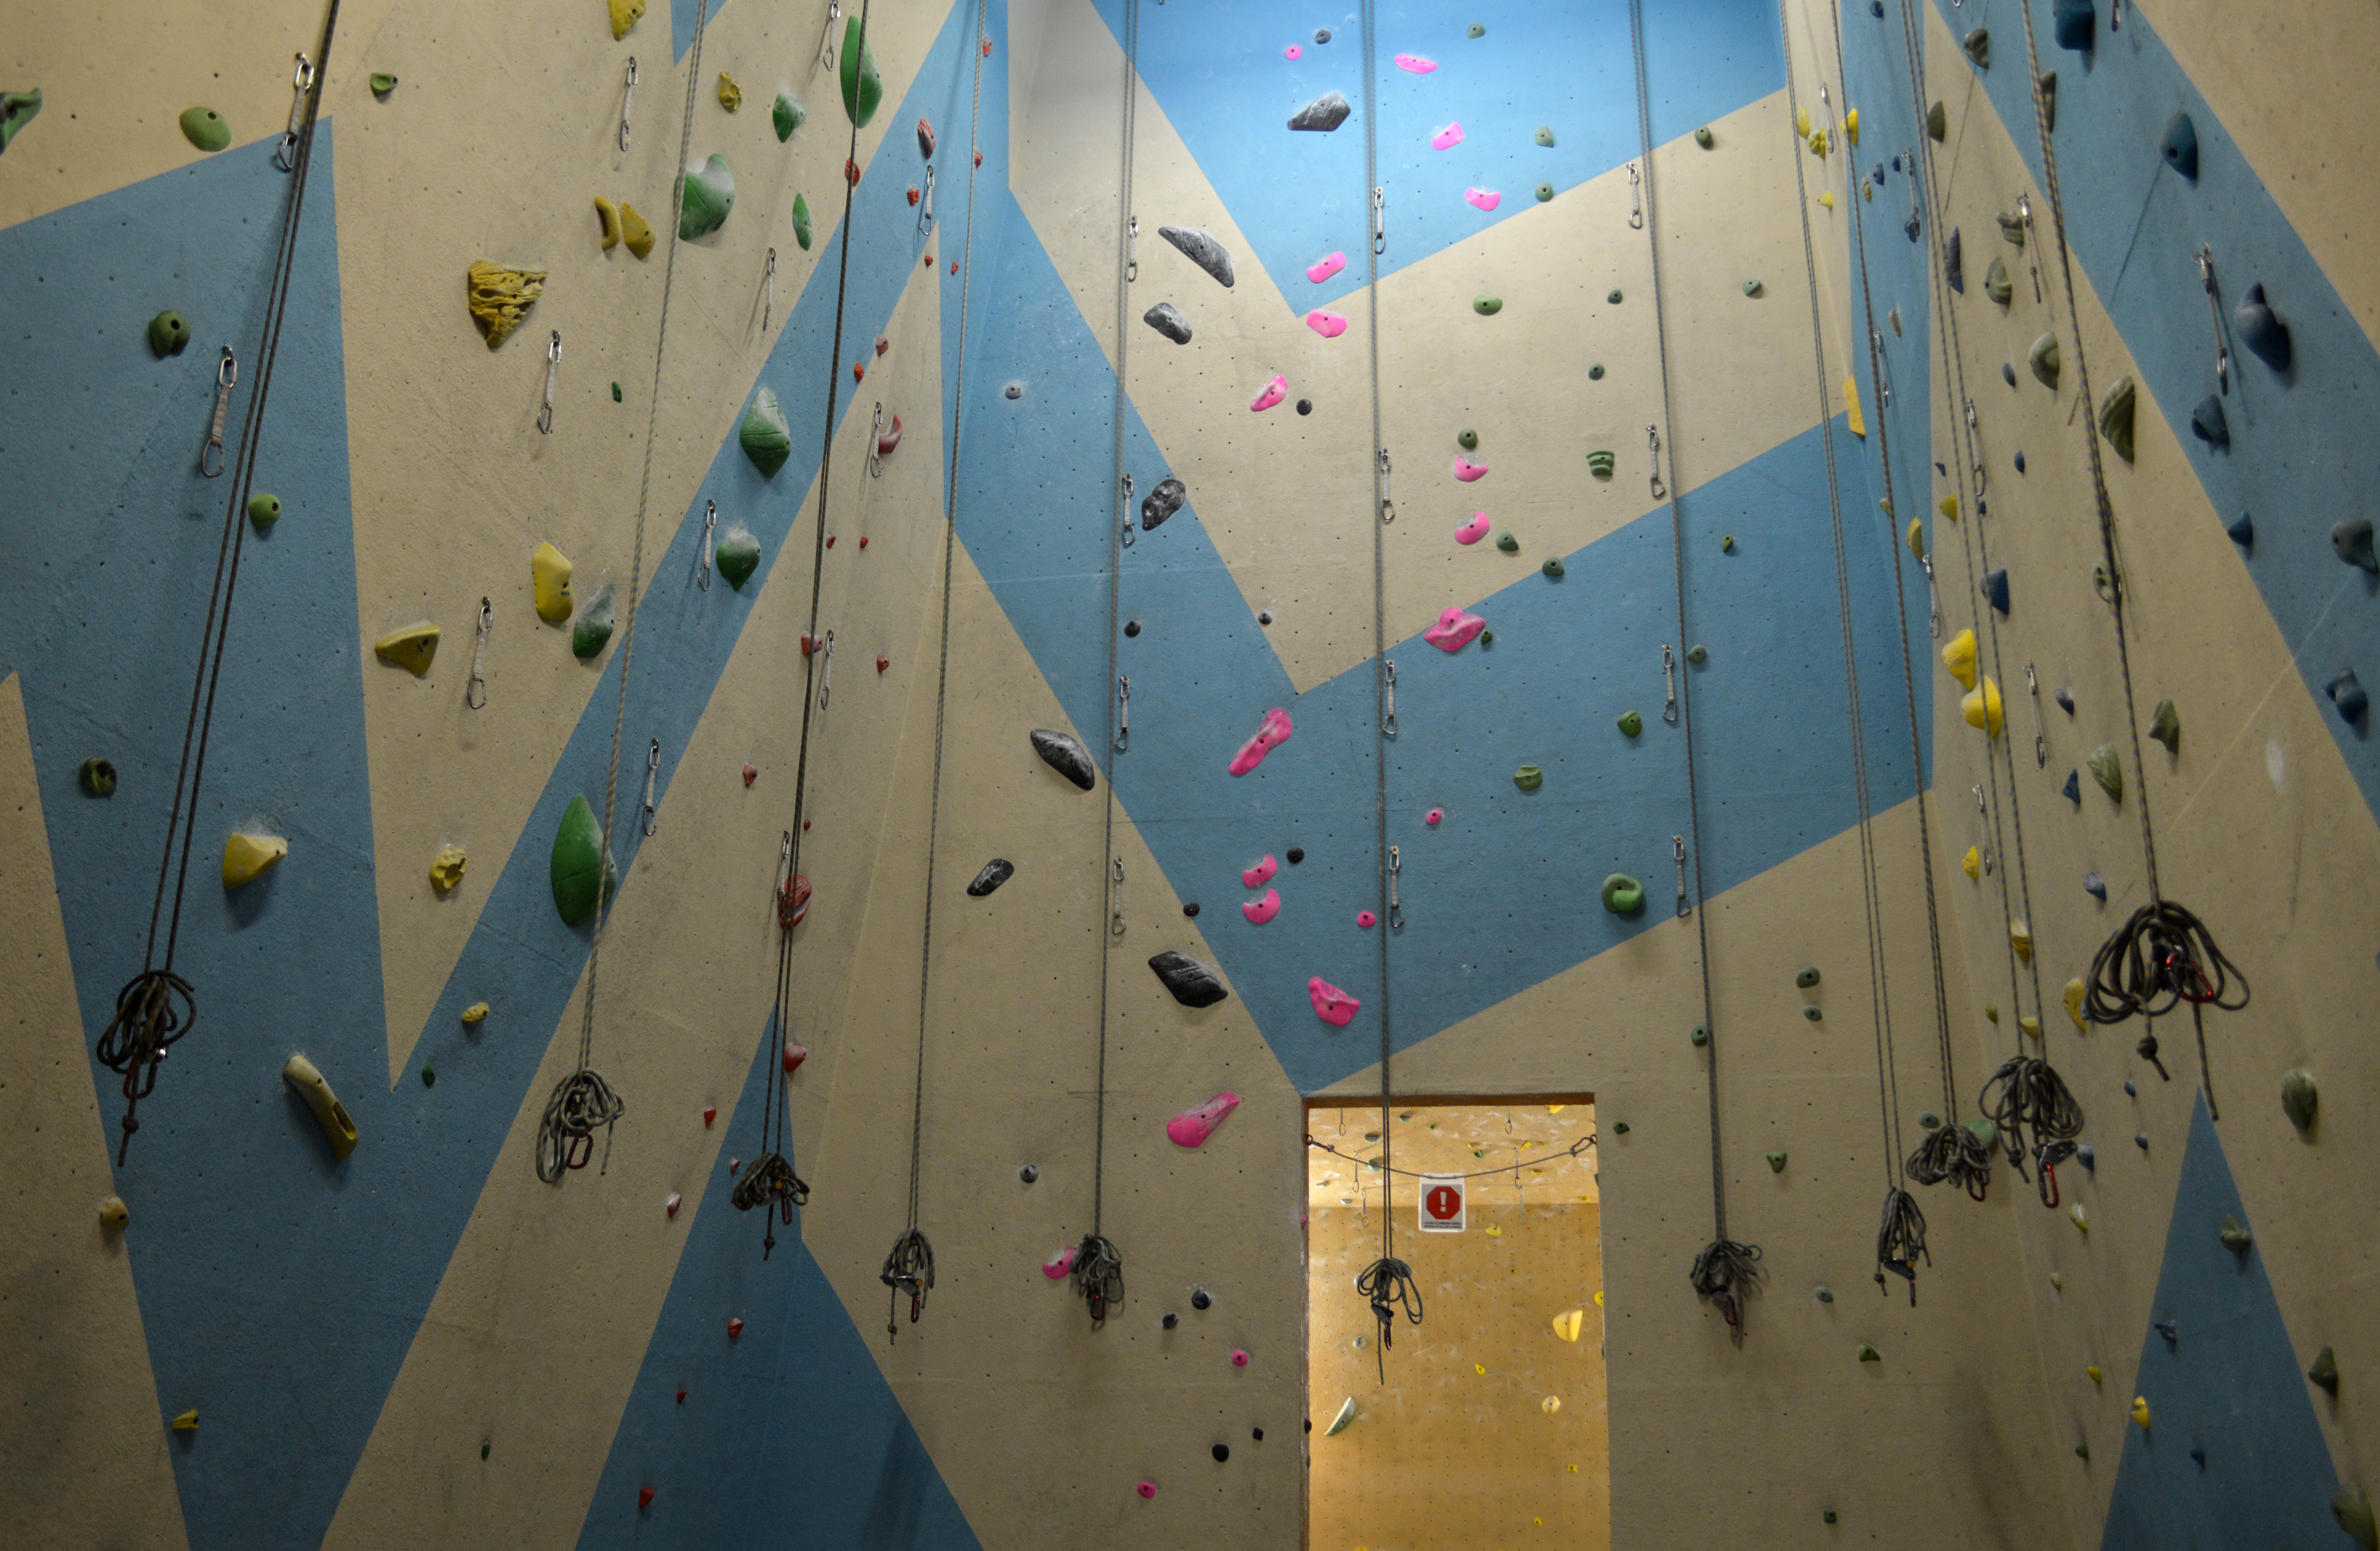 Climbing Bay 6 with 10° and 5° overhang walls